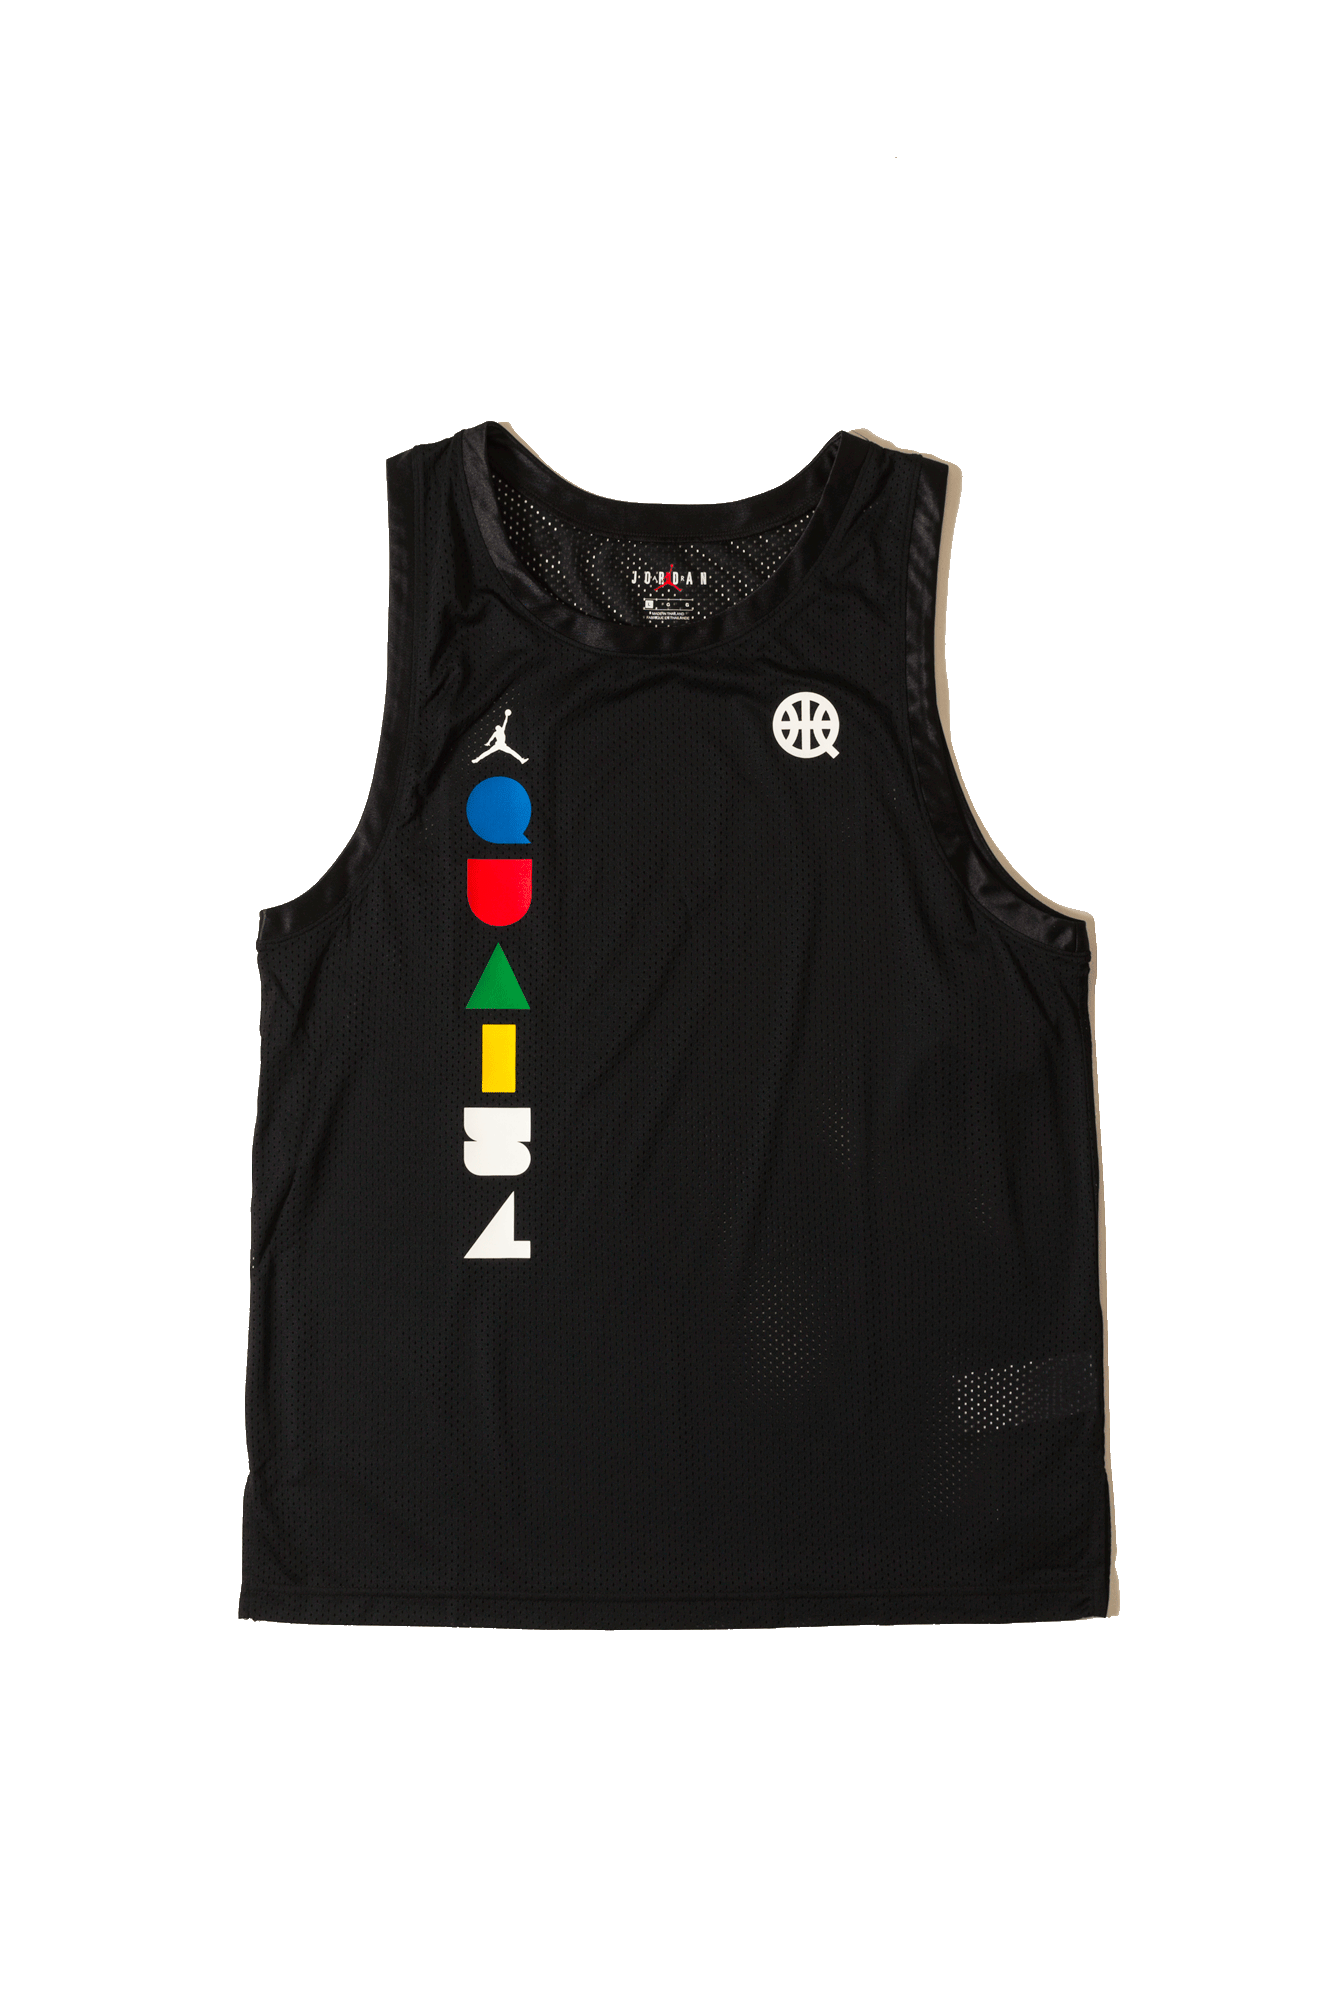 Air Jordan Tank Top Game Jersey Quay54 Black CK0491-010#000#C0010#XS - One Block Down